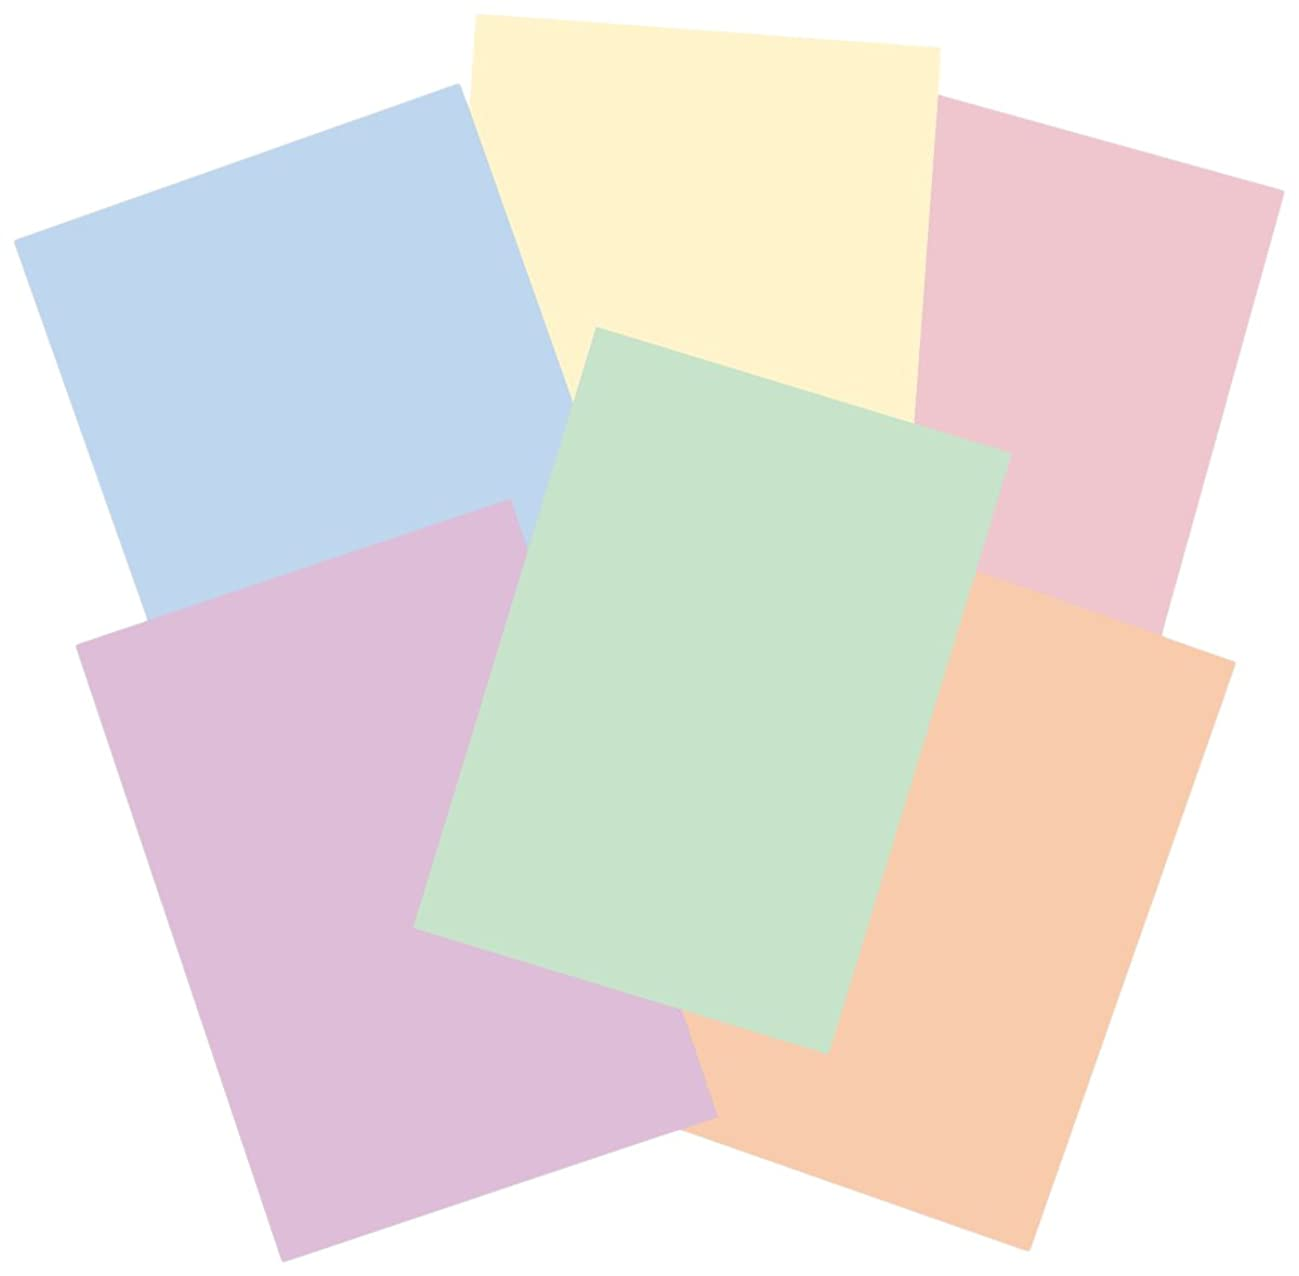 House of Card and Paper Rainbow A4 160 GSM Pastel Coloured Card (Pack of 50)